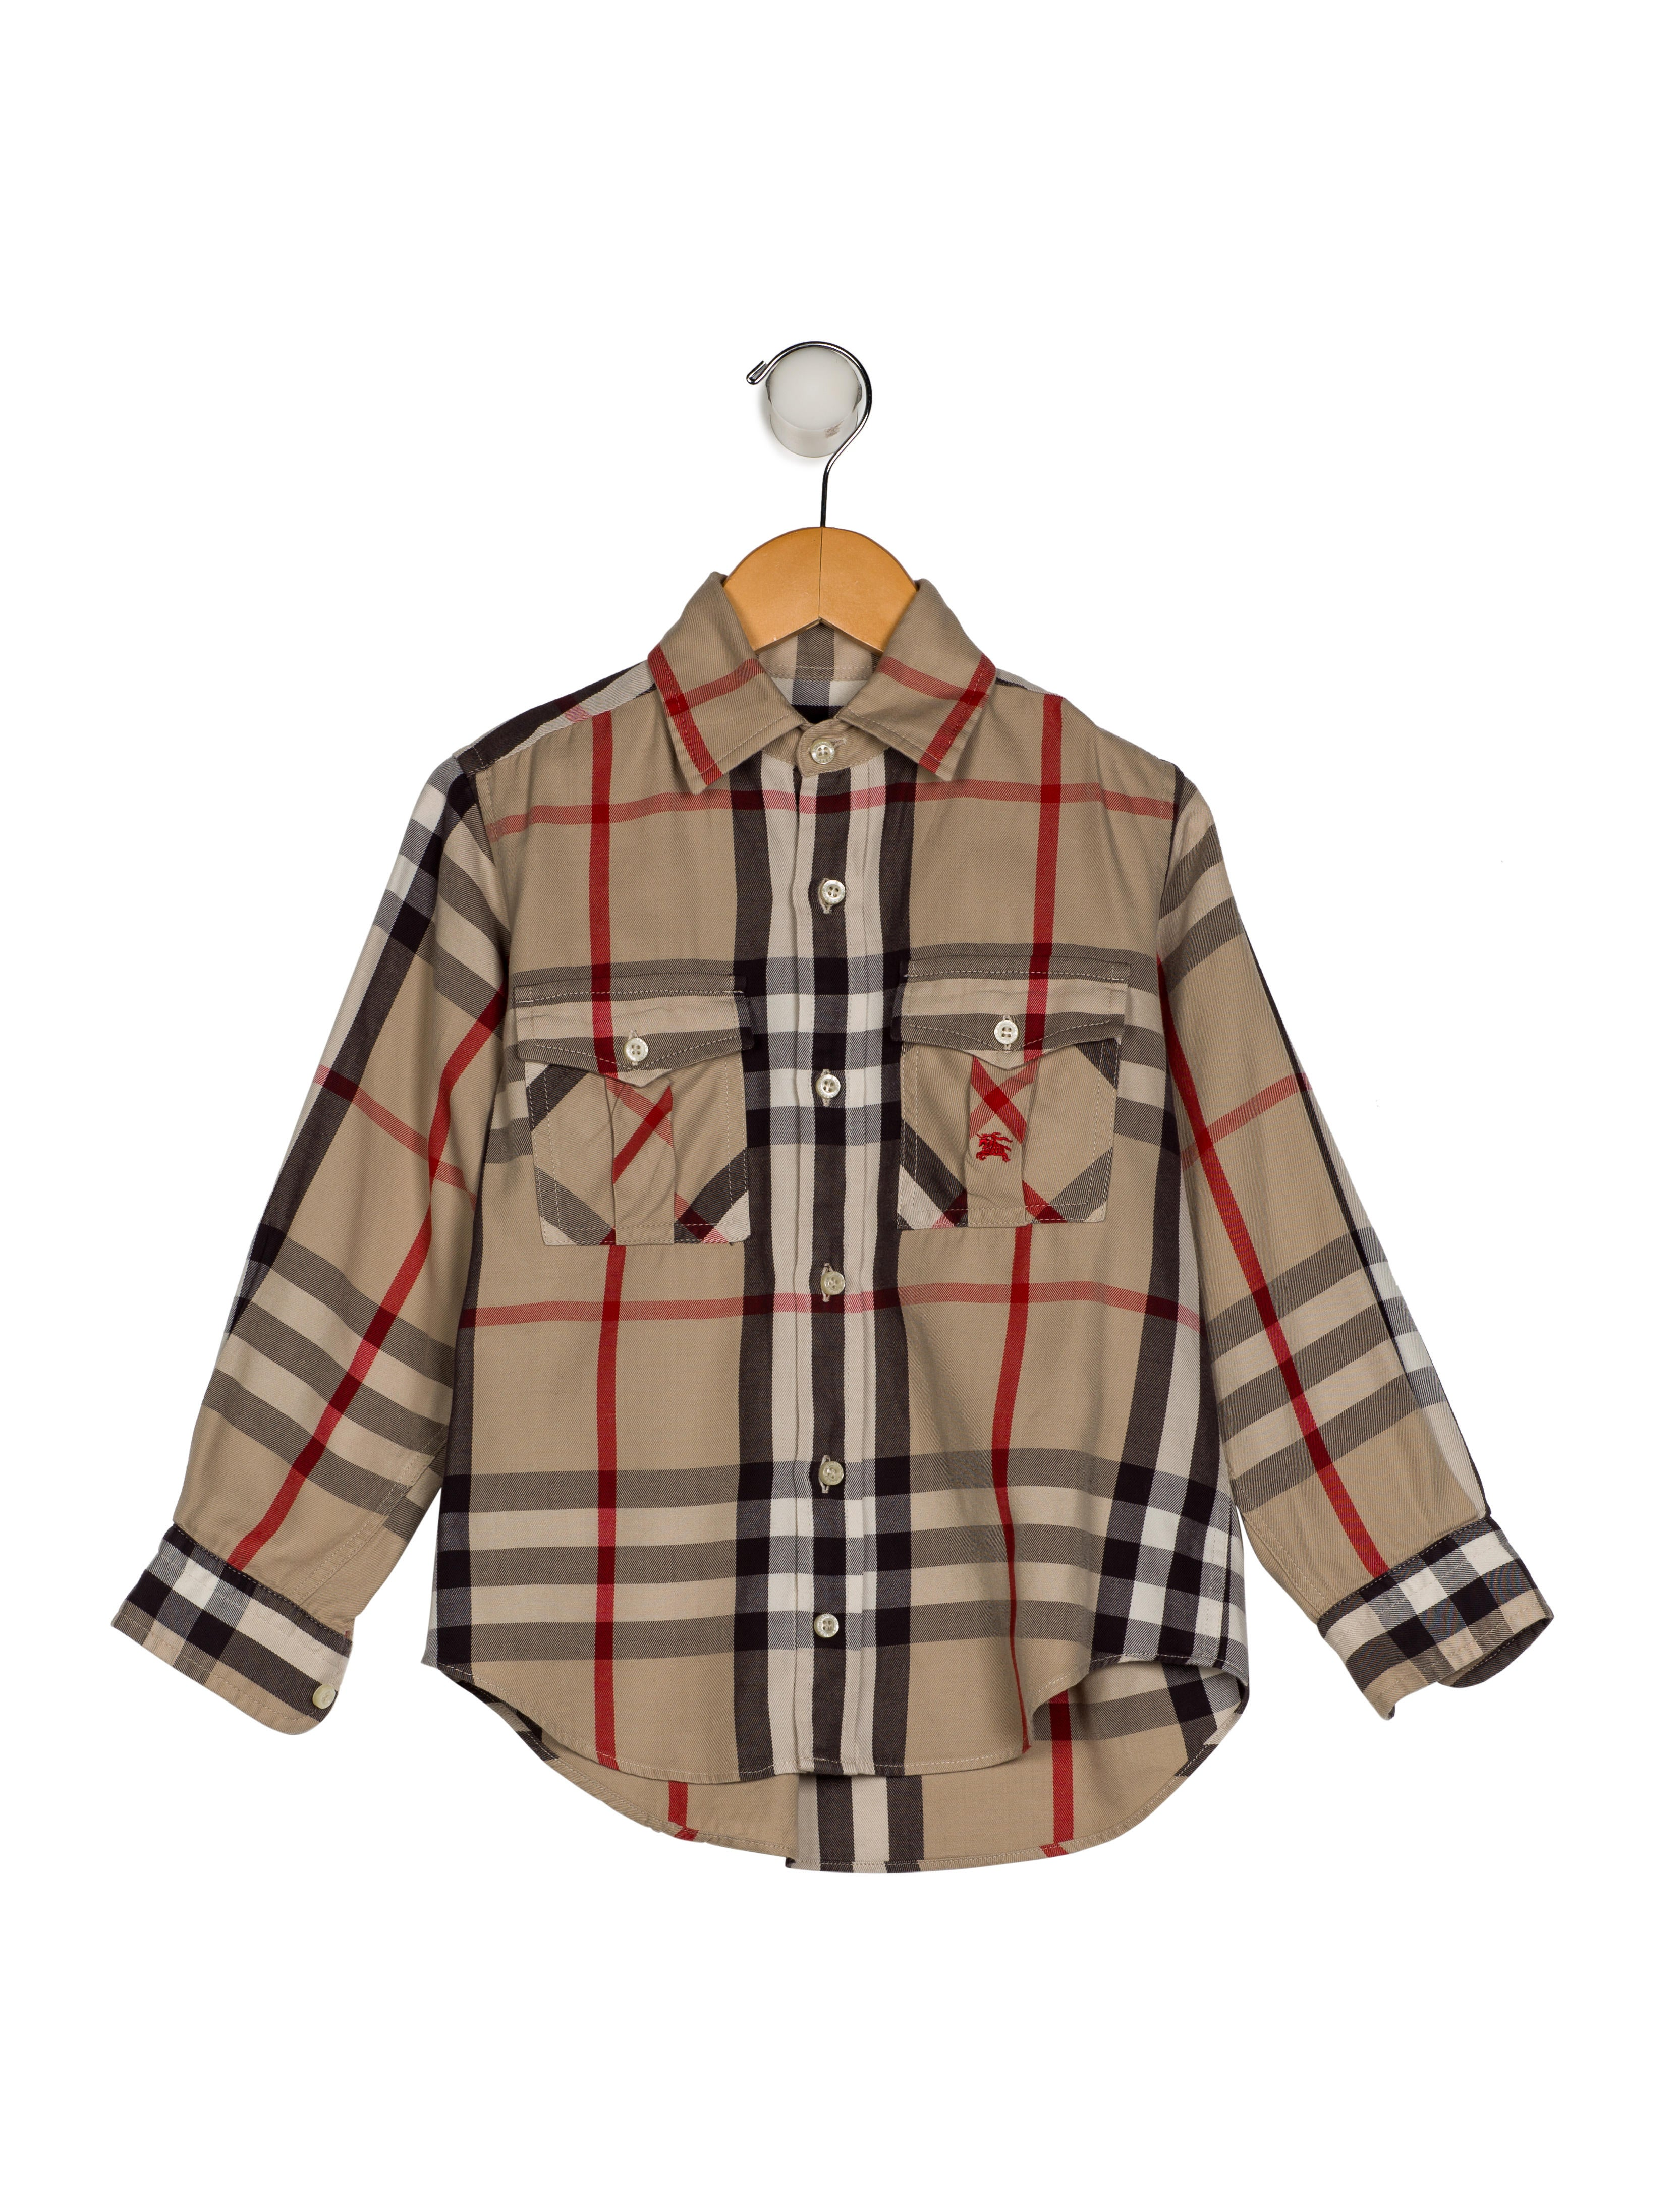 99ab7276 Burberry Boys' Exploded Check Print Shirt - Boys - BUR99575 | The ...